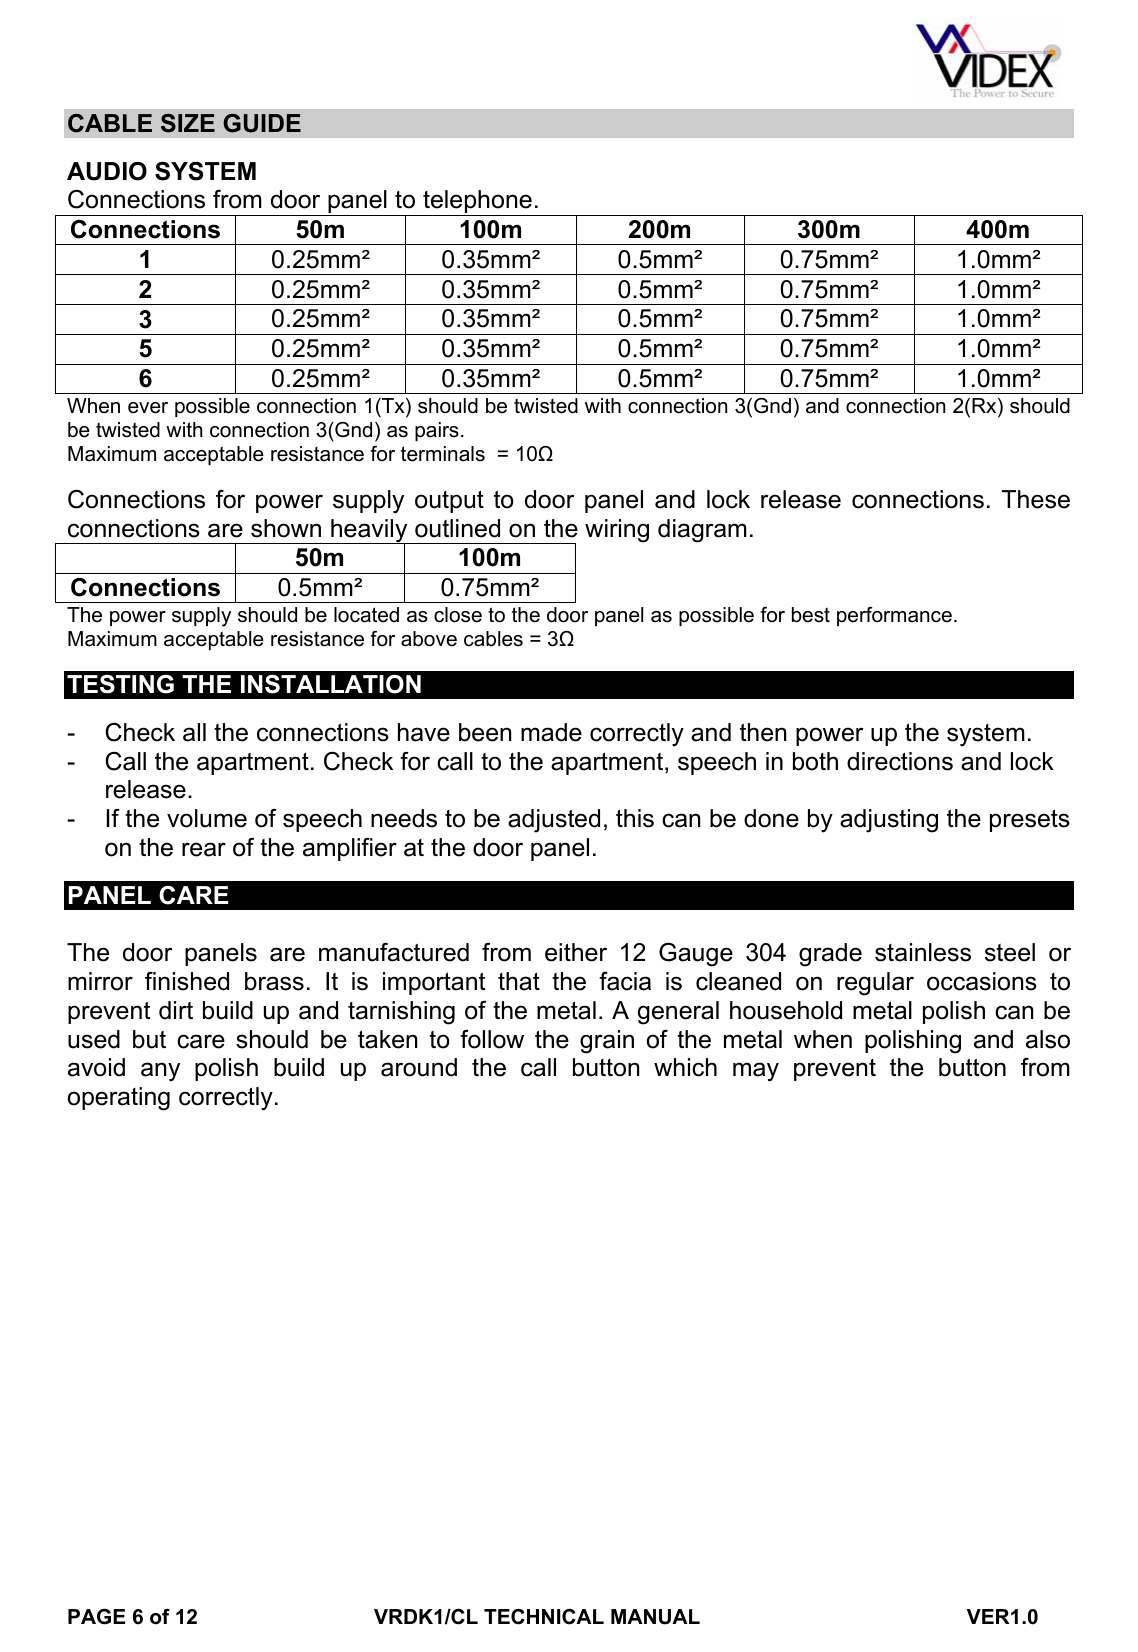 Vrdk1clmanual Videx Vrdk1cl Manual With Codelock Wiring Diagram Page 6 Of 12